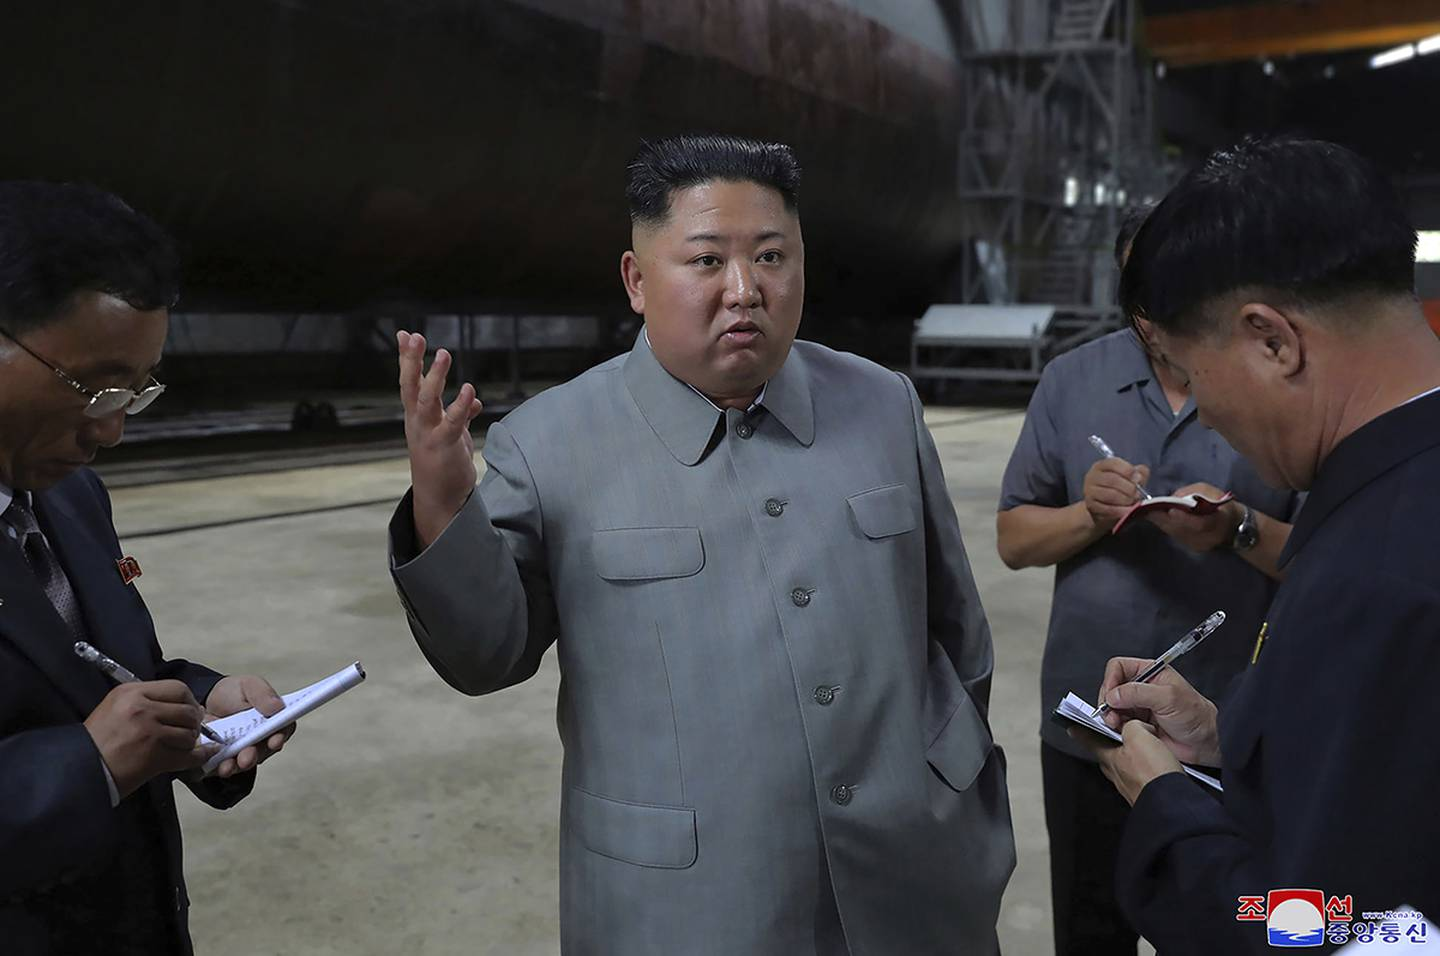 In this undated photo provided on Tuesday, July 23, 2019, North Korean leader Kim Jong Un, center, speaks while inspecting a newly built submarine to be deployed soon, at an unknown location in North Korea.